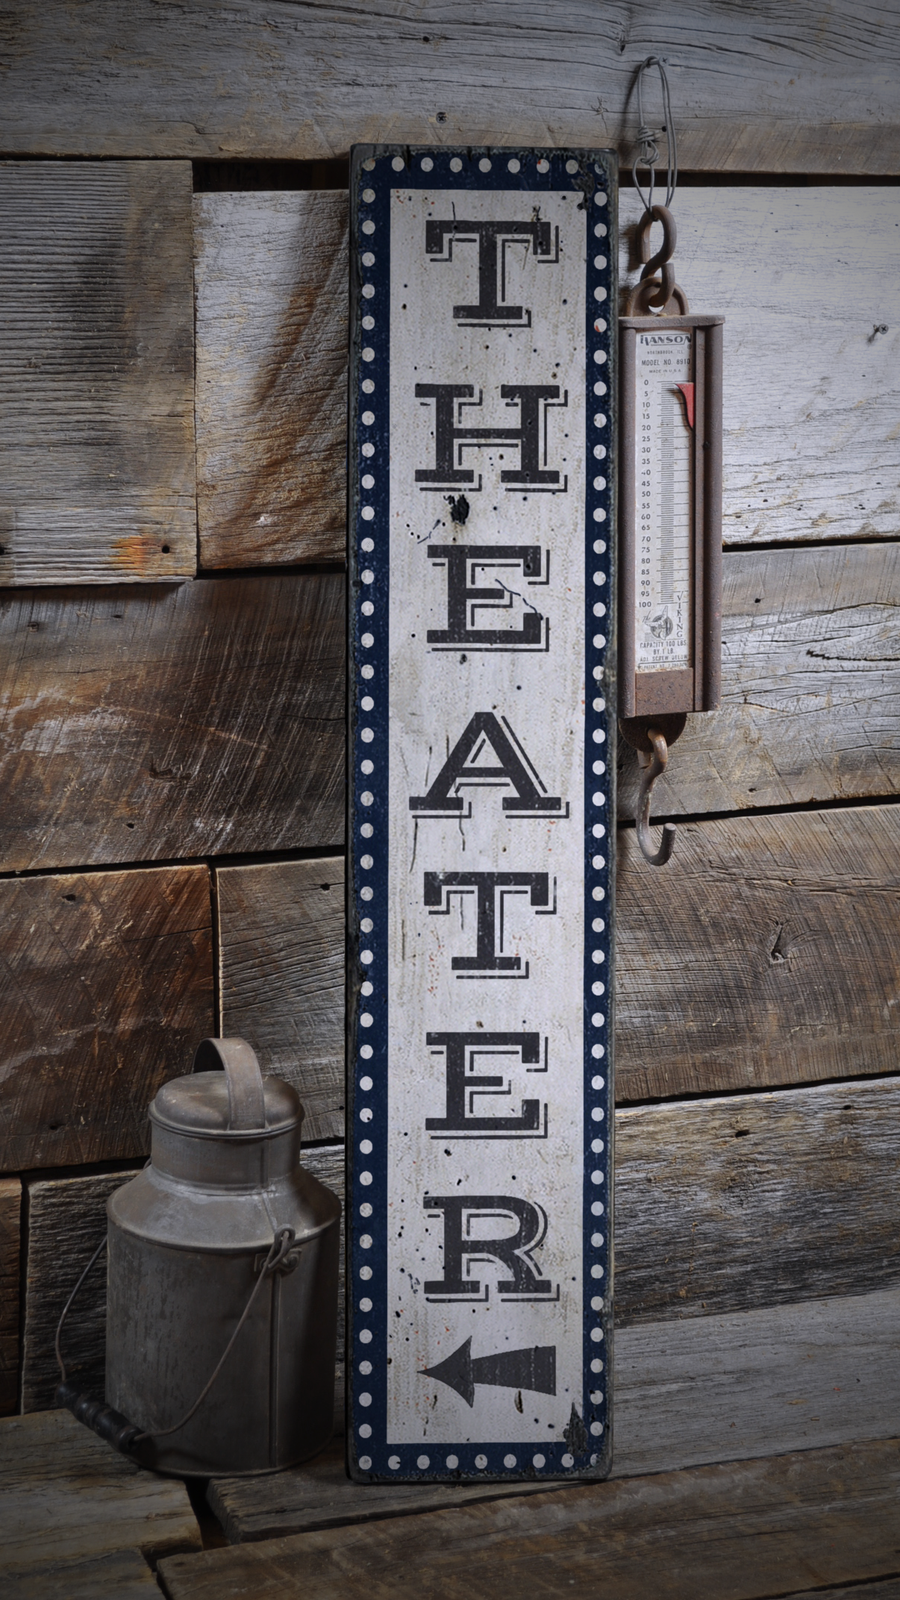 Movie Room, Home Theater, Grünical - Rustic Distressed Wood Sign ENS1000911